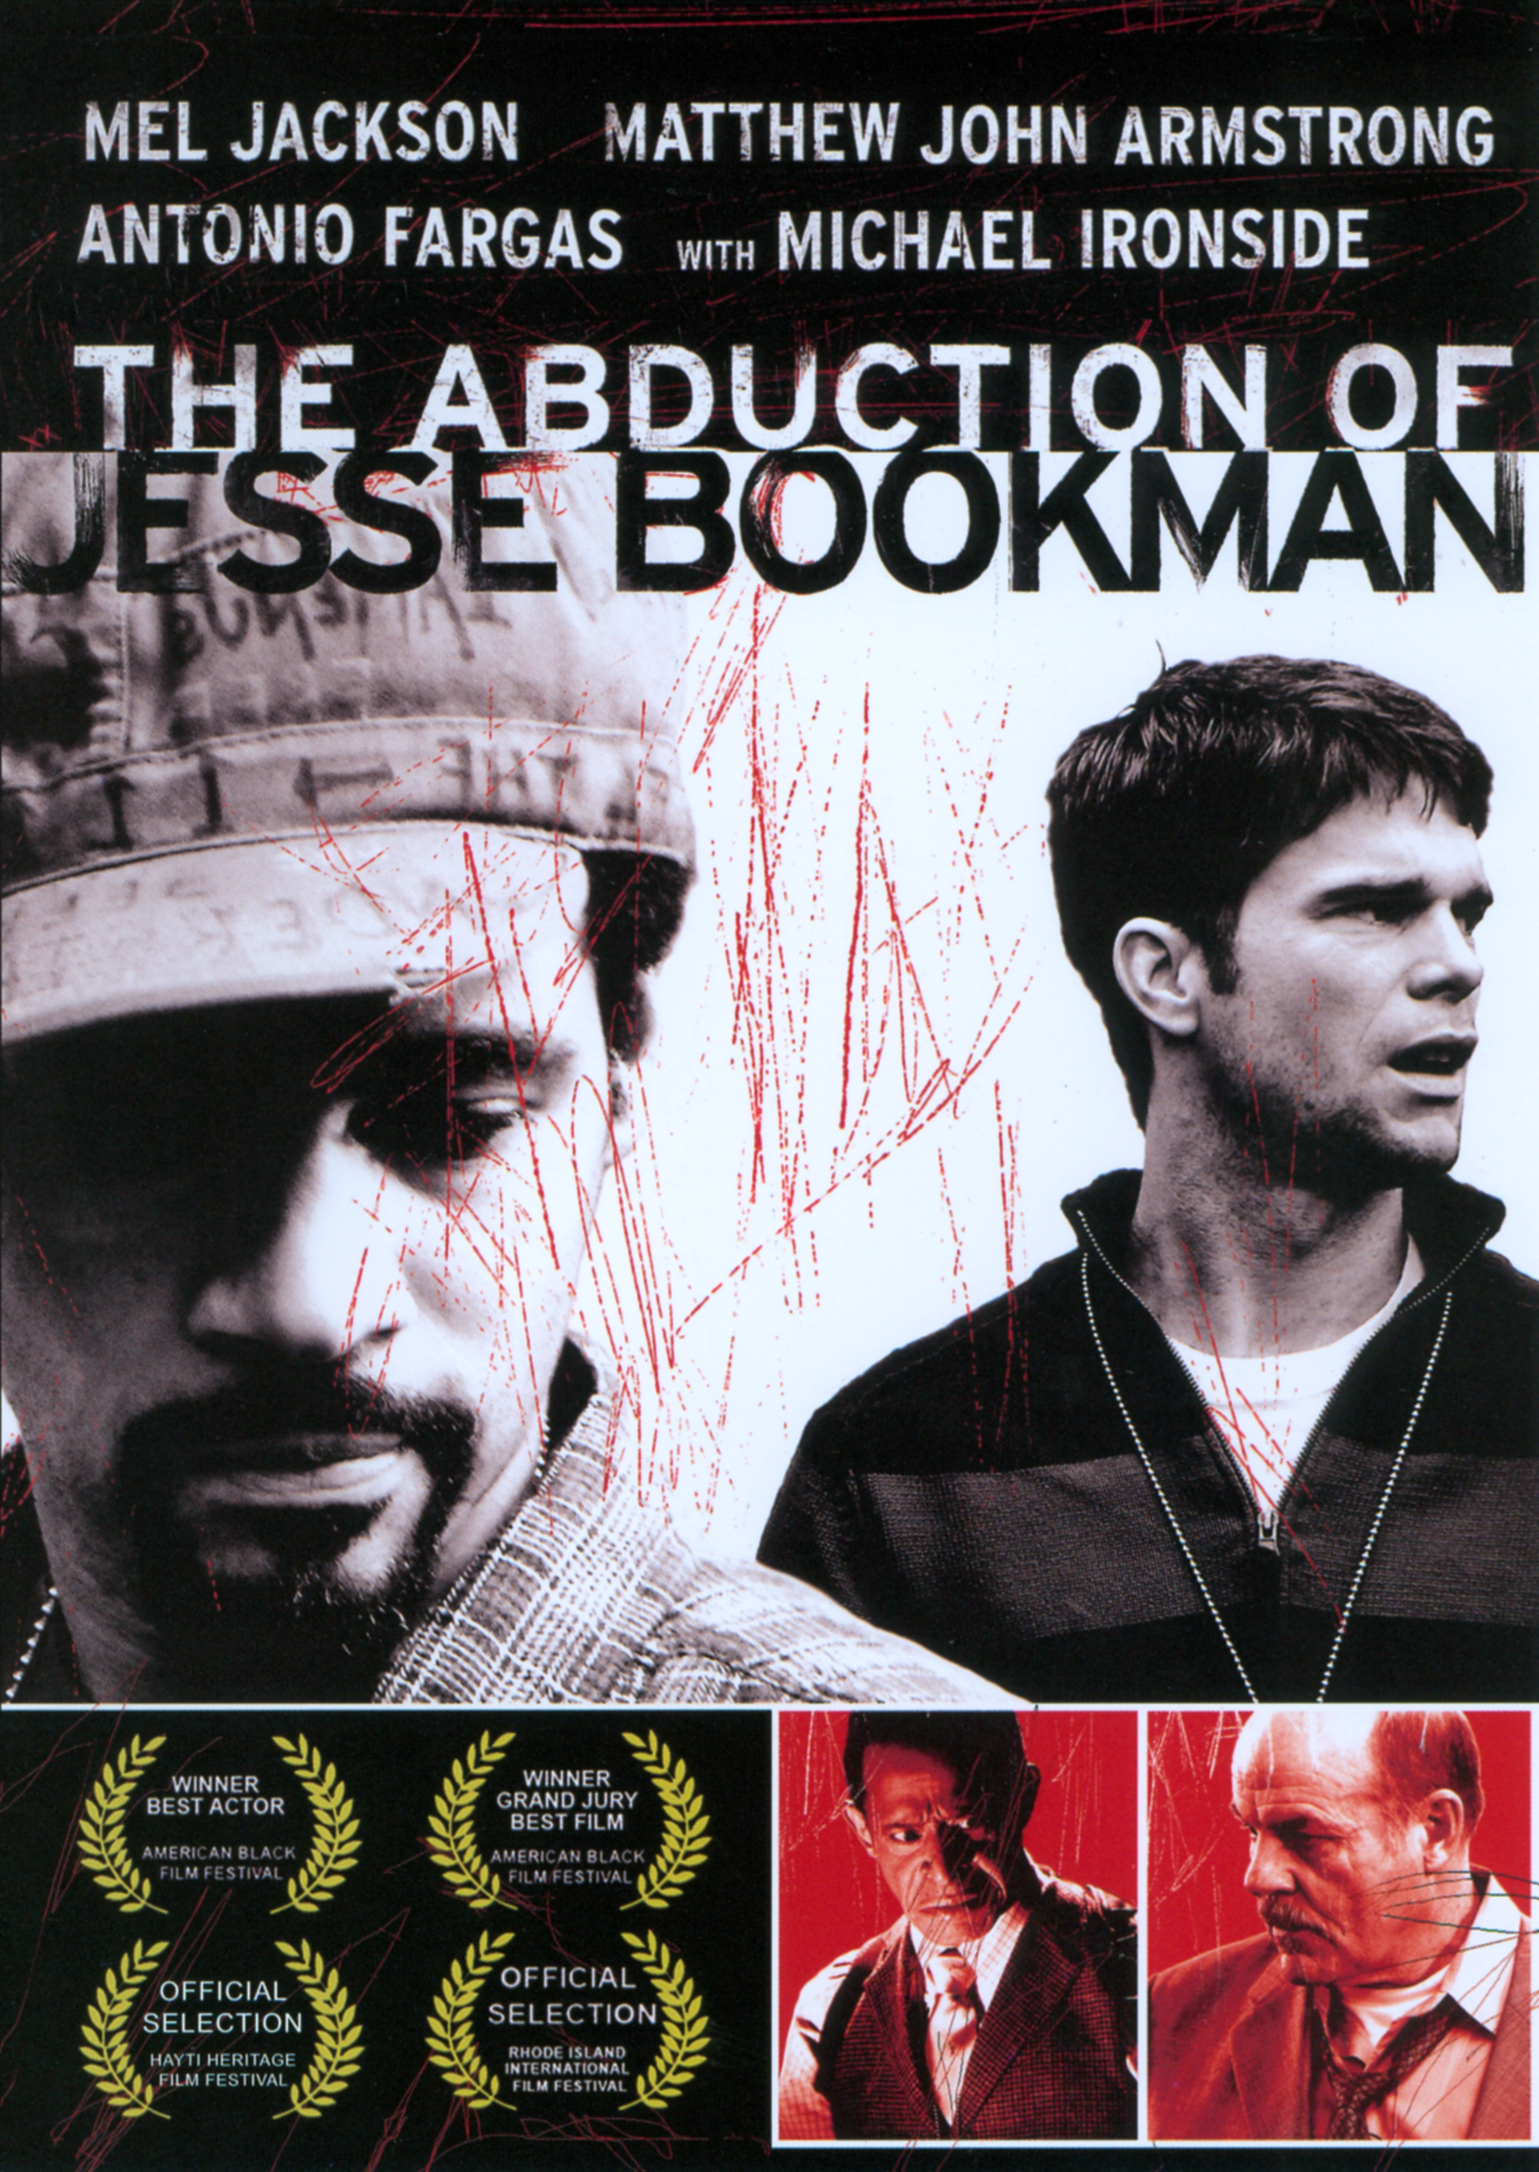 The Abduction of Jesse Bookman